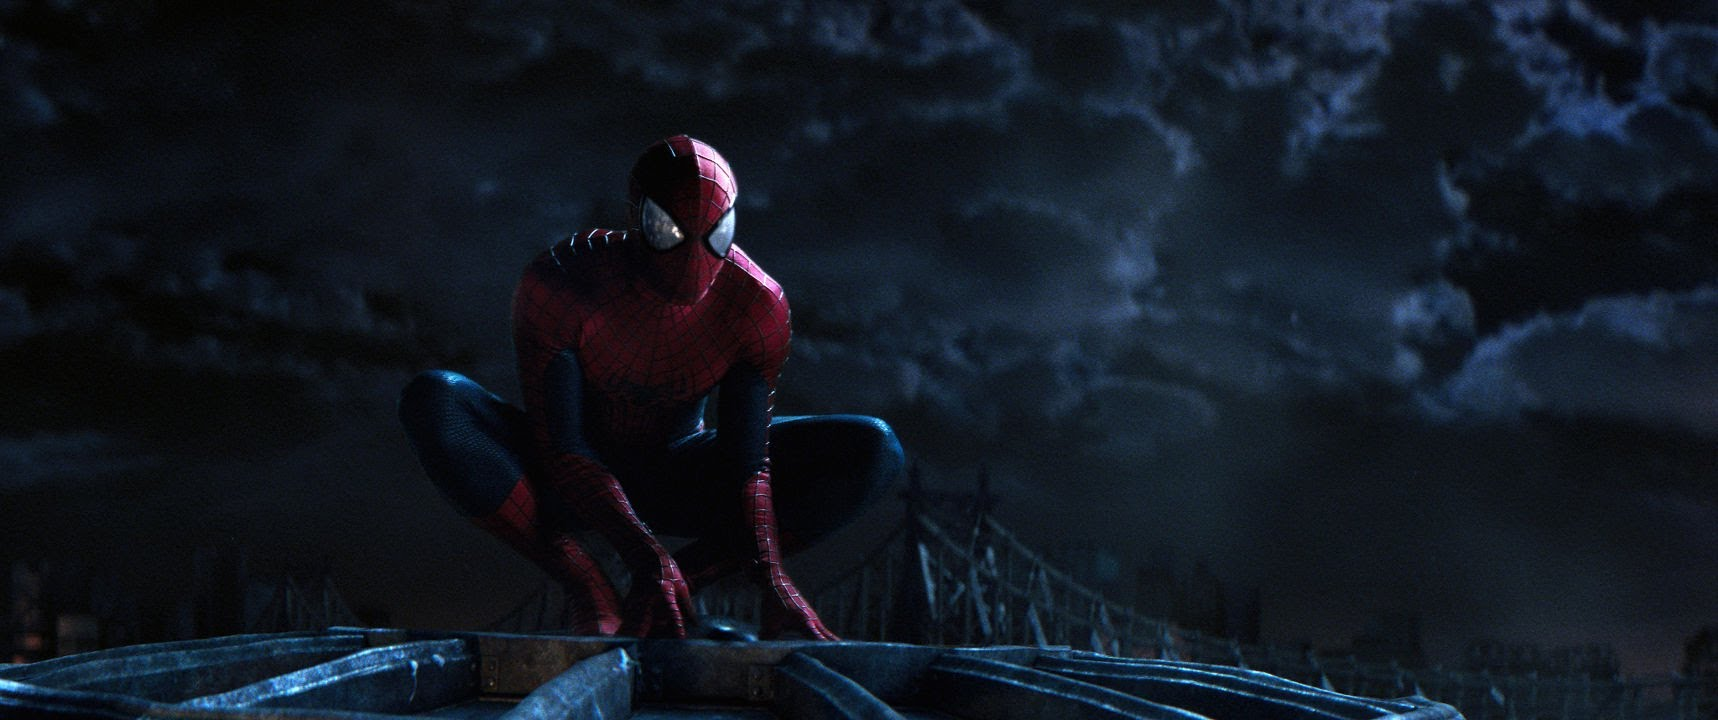 "Tráiler final de ""The Amazing Spider-Man; el poder de Electro"" en español"